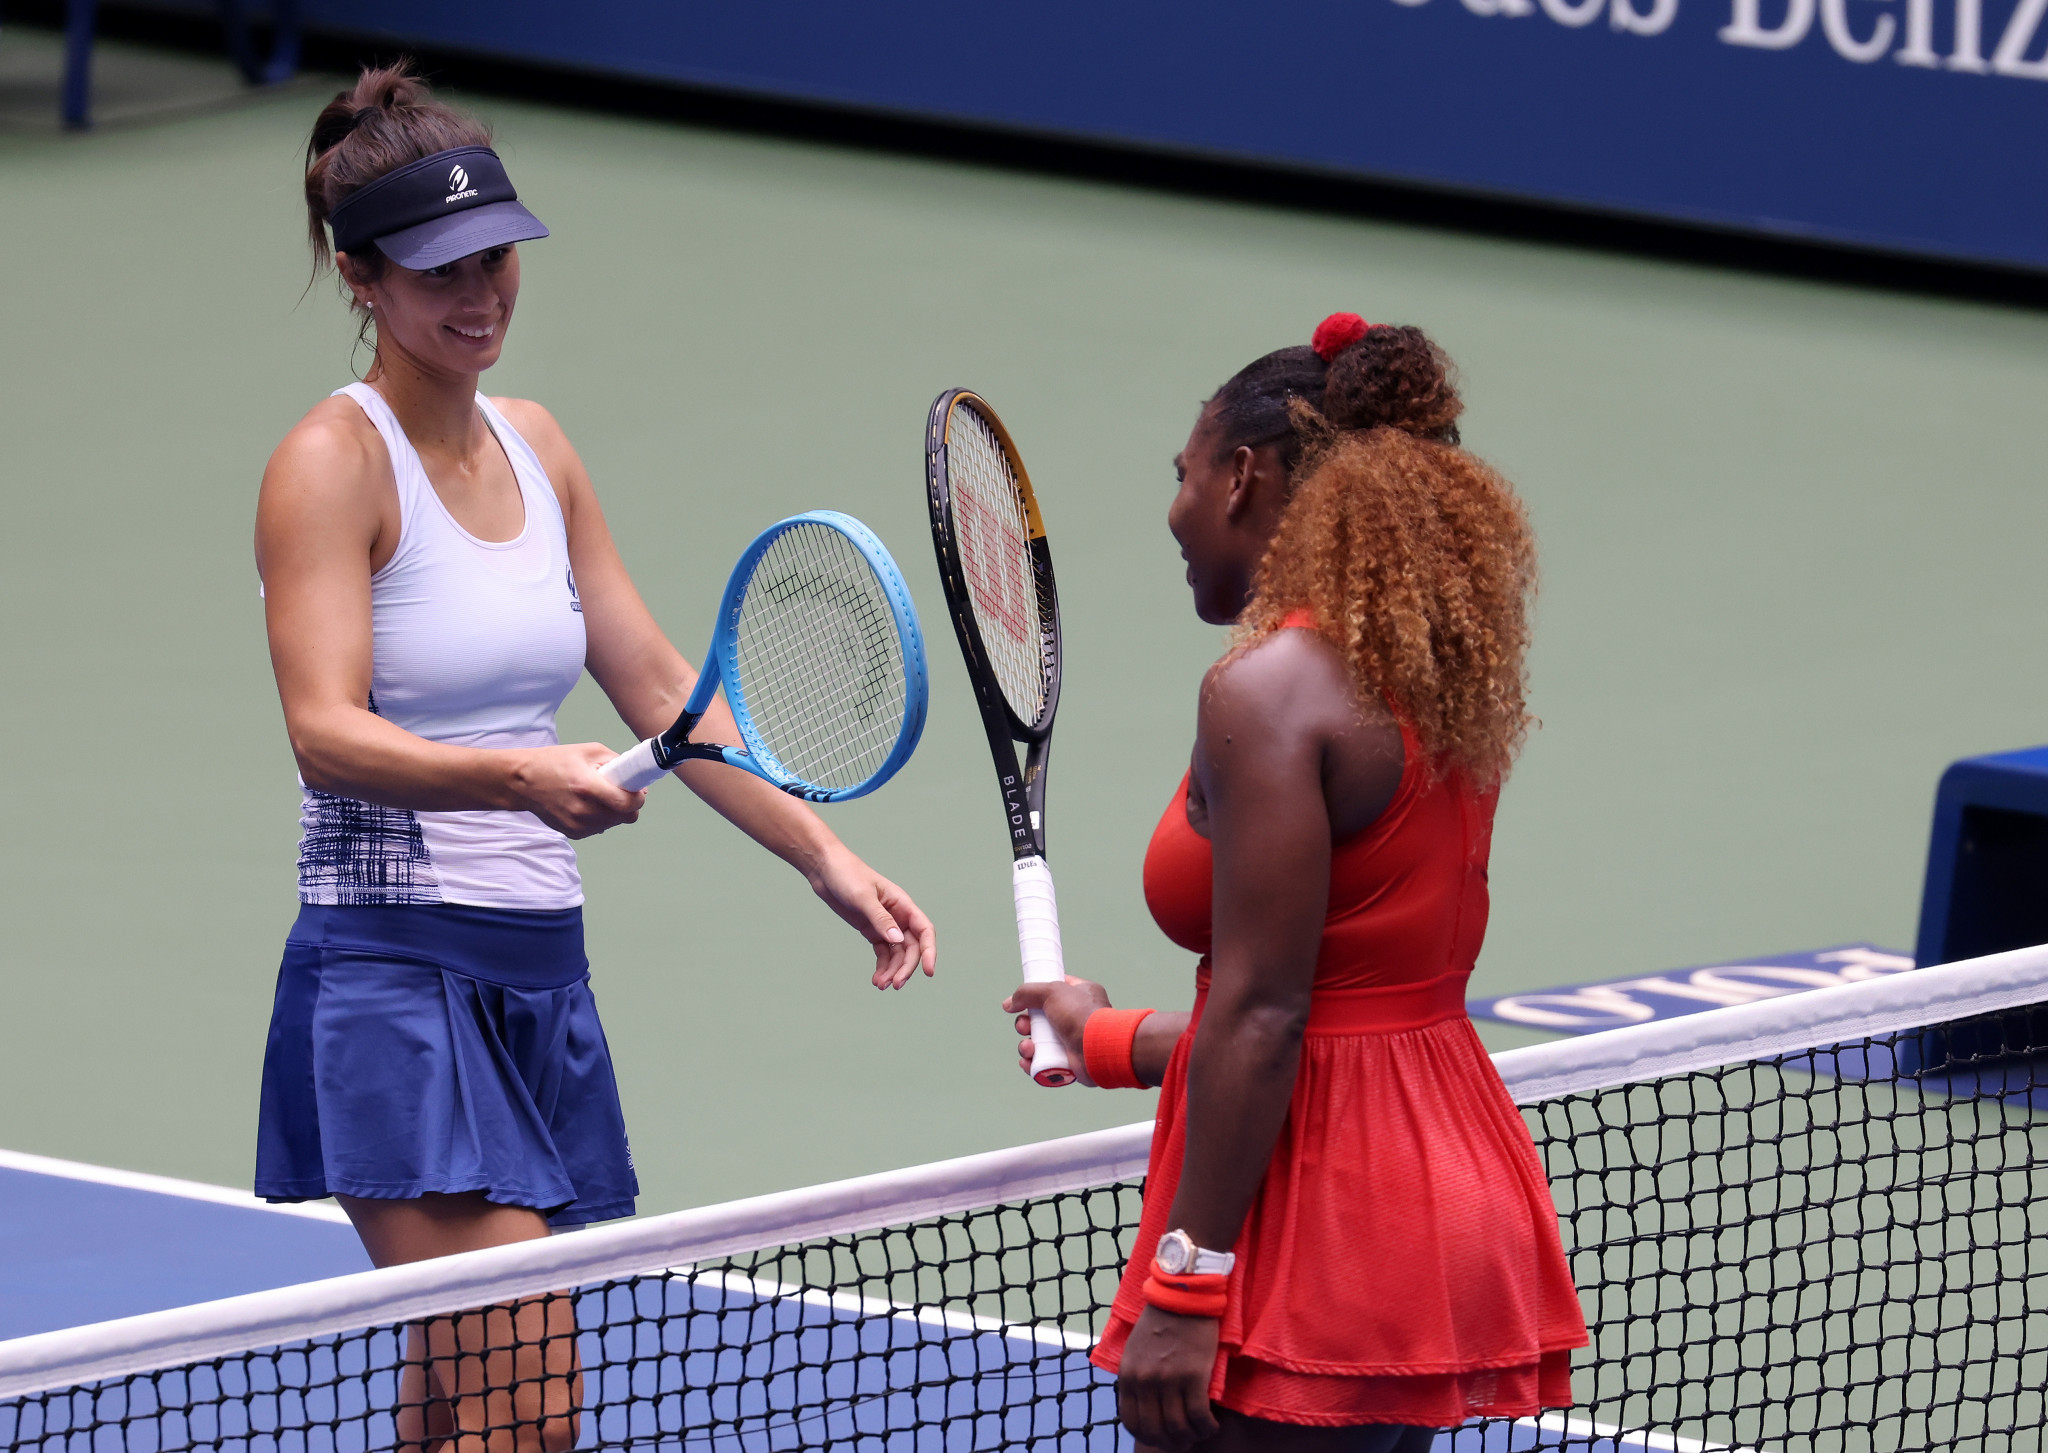 Third seeds Williams and Medvedev among winners as US Open quarter-finals continue